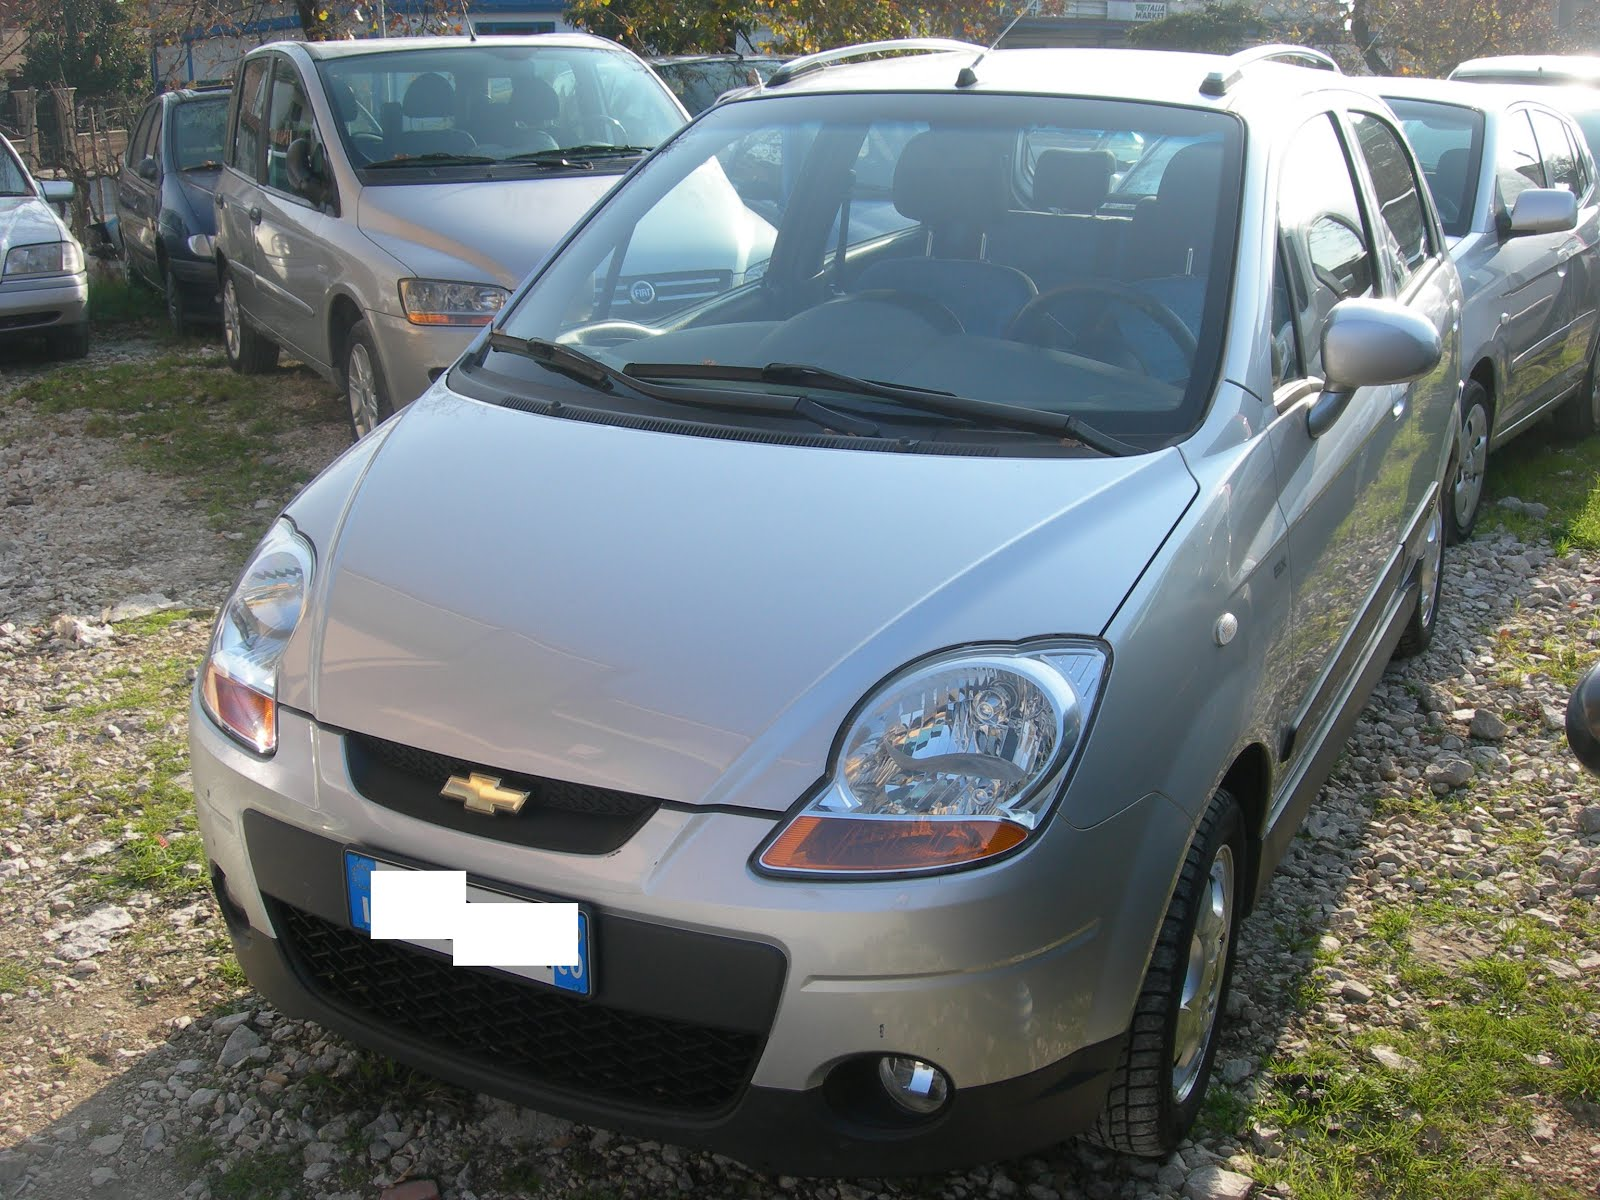 CHEVROLET MATIZ 1.0 GPL DI SERIE ACCESSORI FULL OPTIONAL ANNO 2010